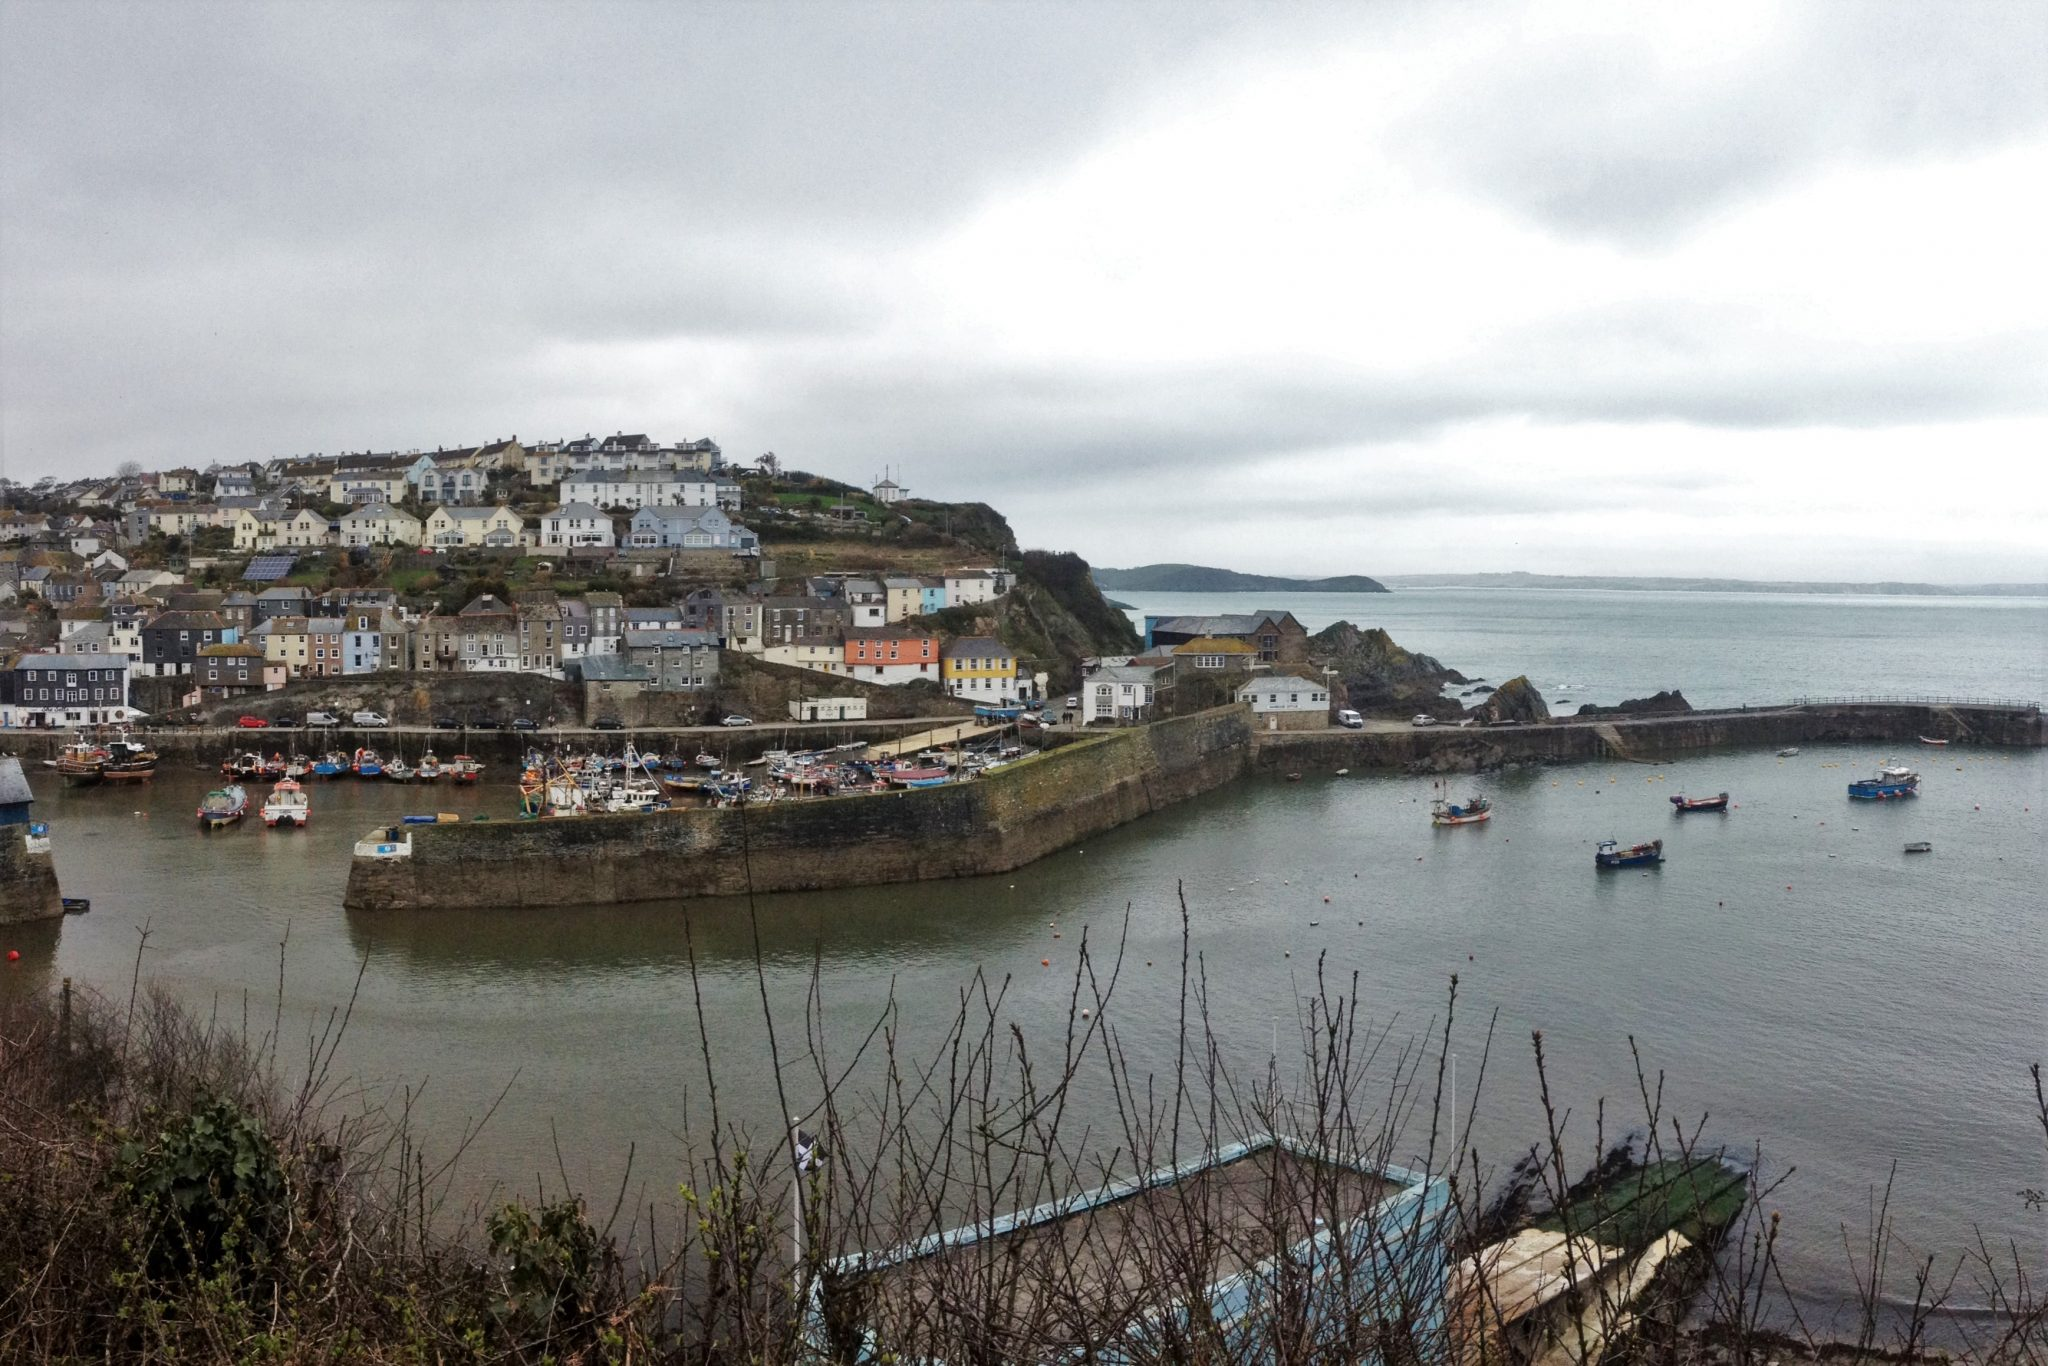 Mevagissey, South West Coast Path, Cornwall UK. Copyright Stephanie Boon, 2018. All rights Reserved.